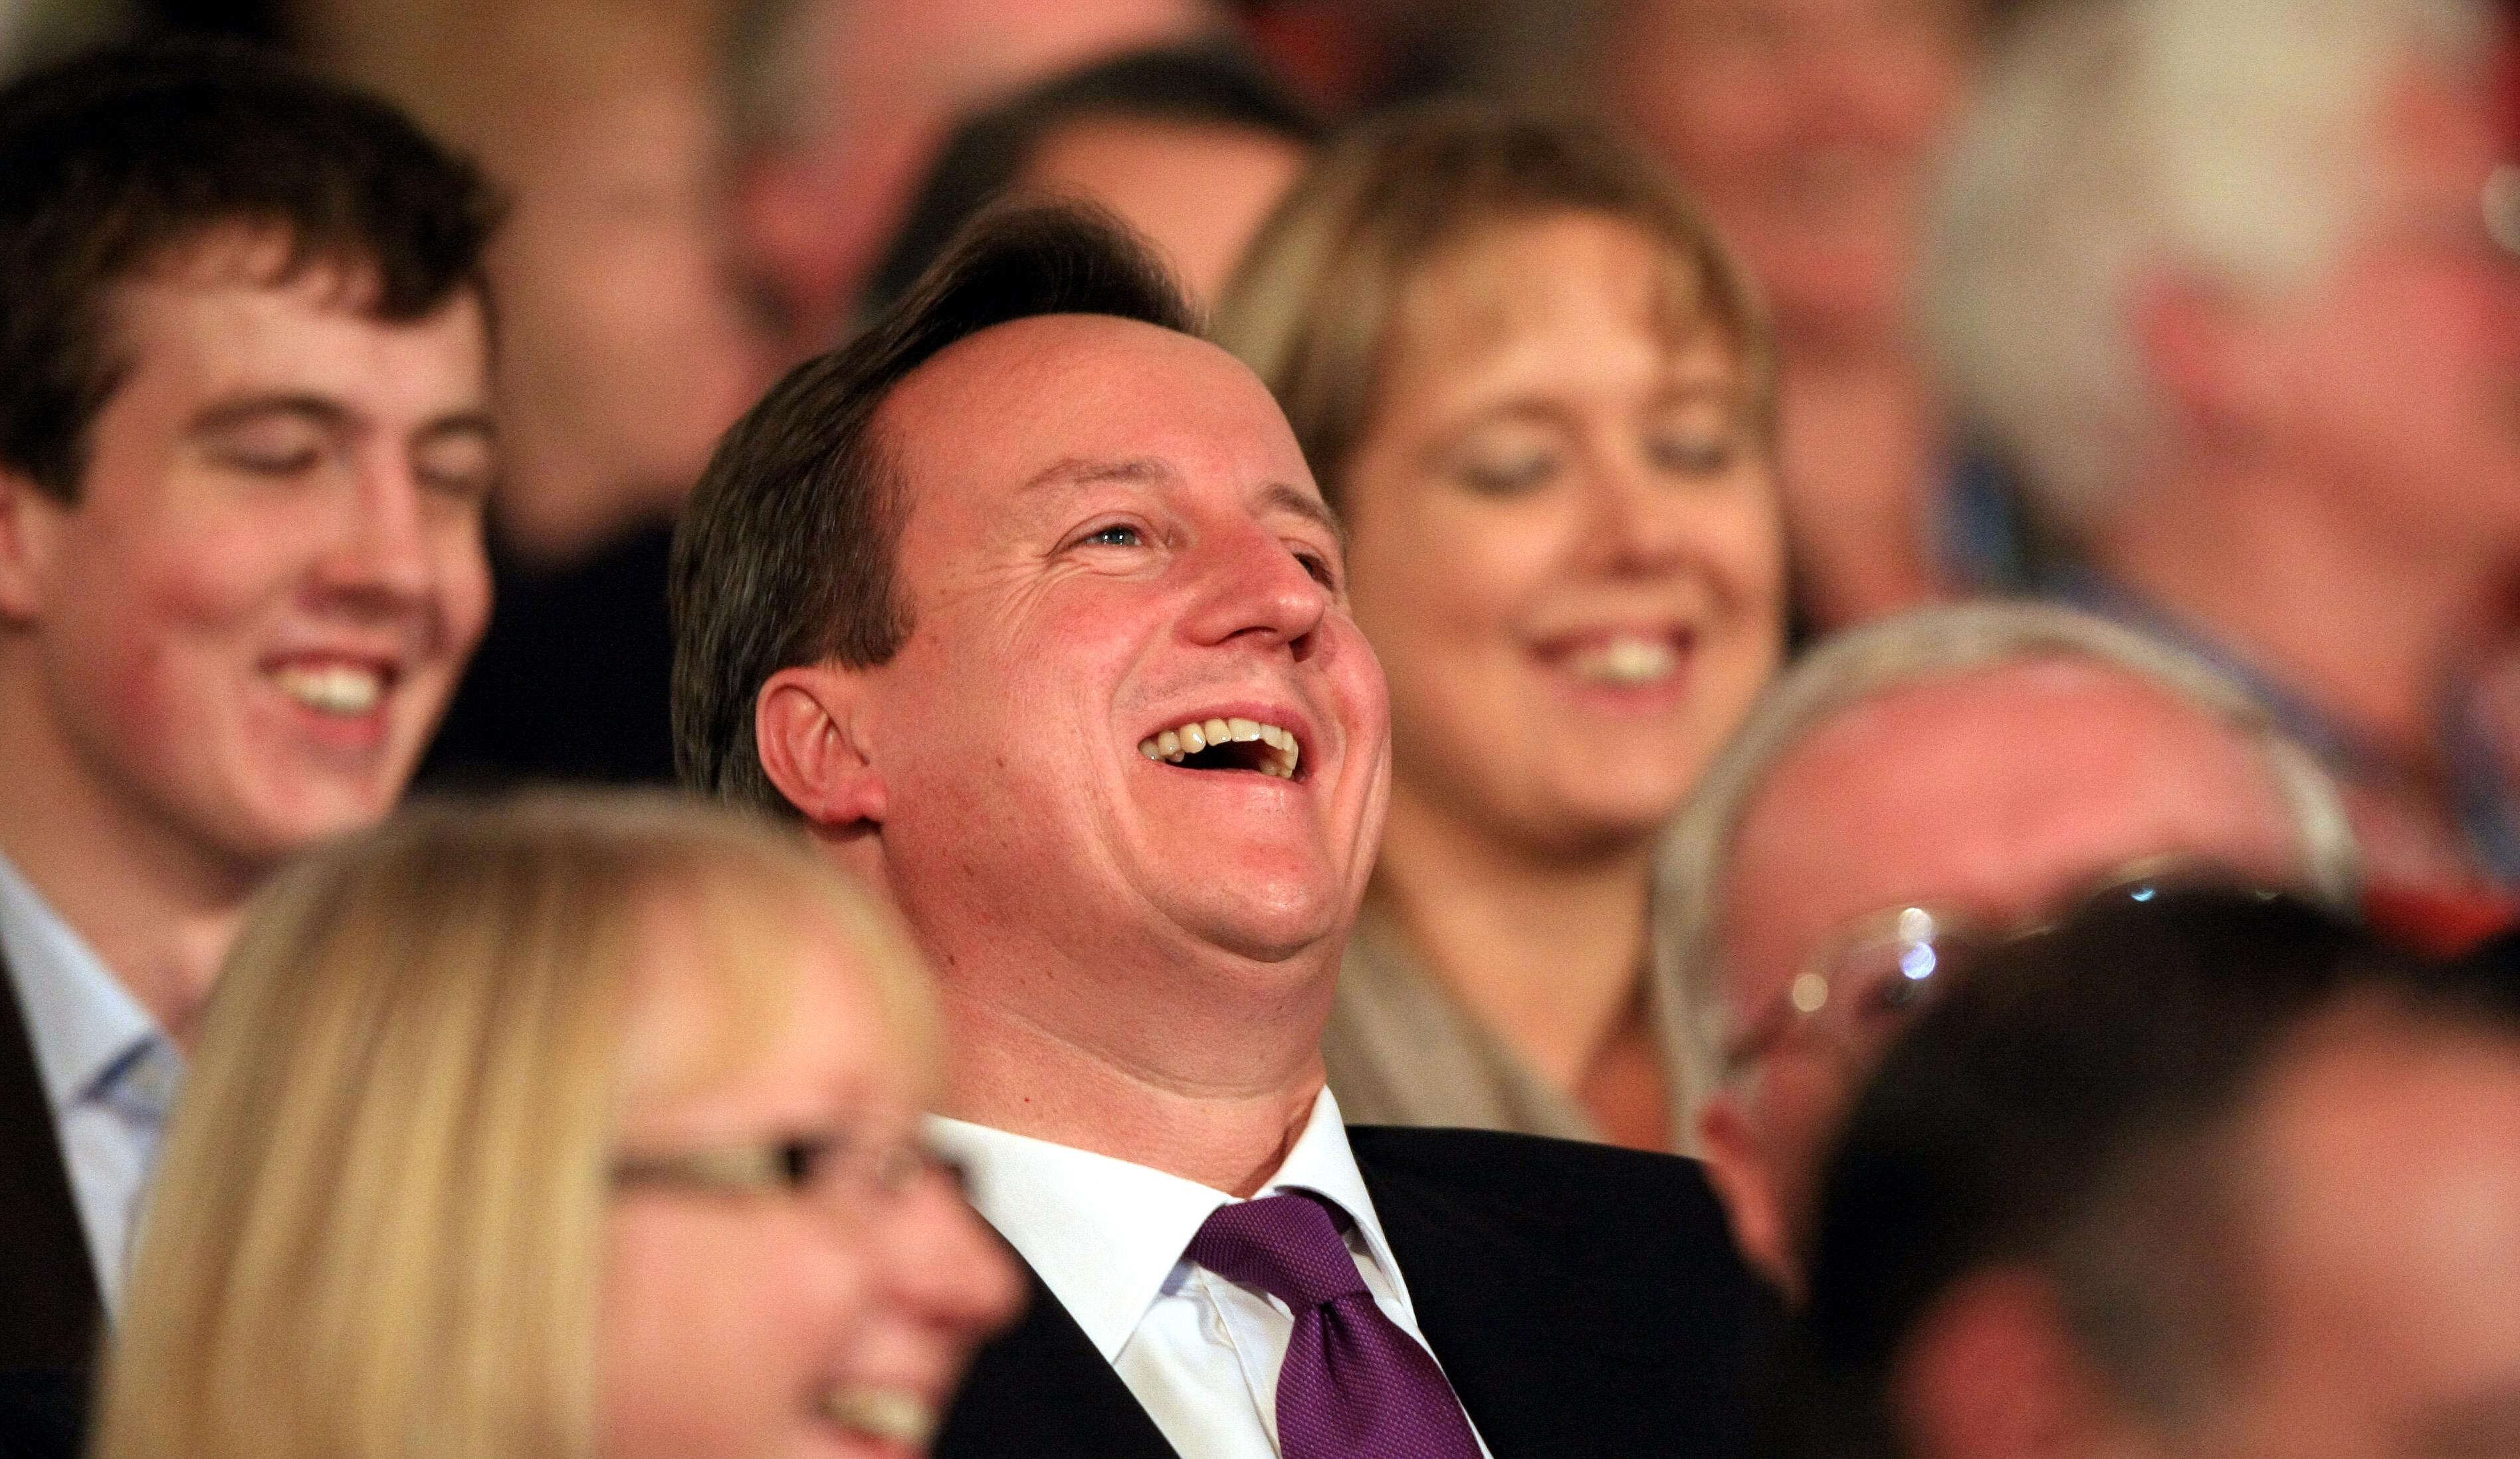 David Cameron Has Axed His Own Mums Job With Latest Tory Cuts PA 9562755